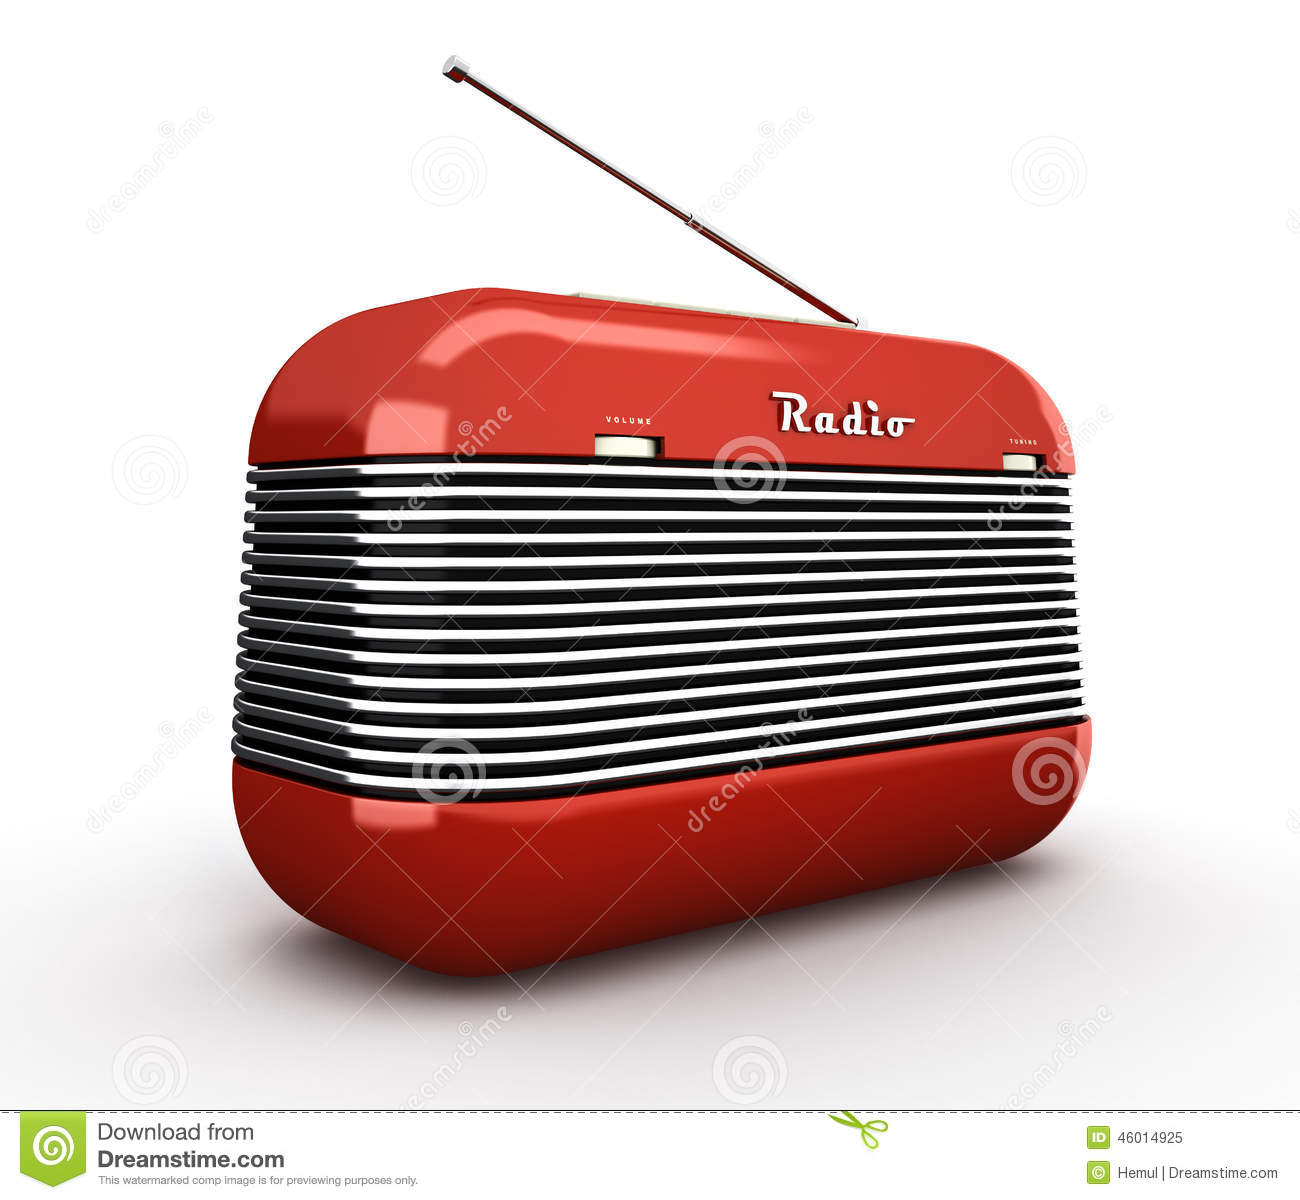 old red vintage retro style radio receiver on white bac stock image image of radio blue 46014925. Black Bedroom Furniture Sets. Home Design Ideas